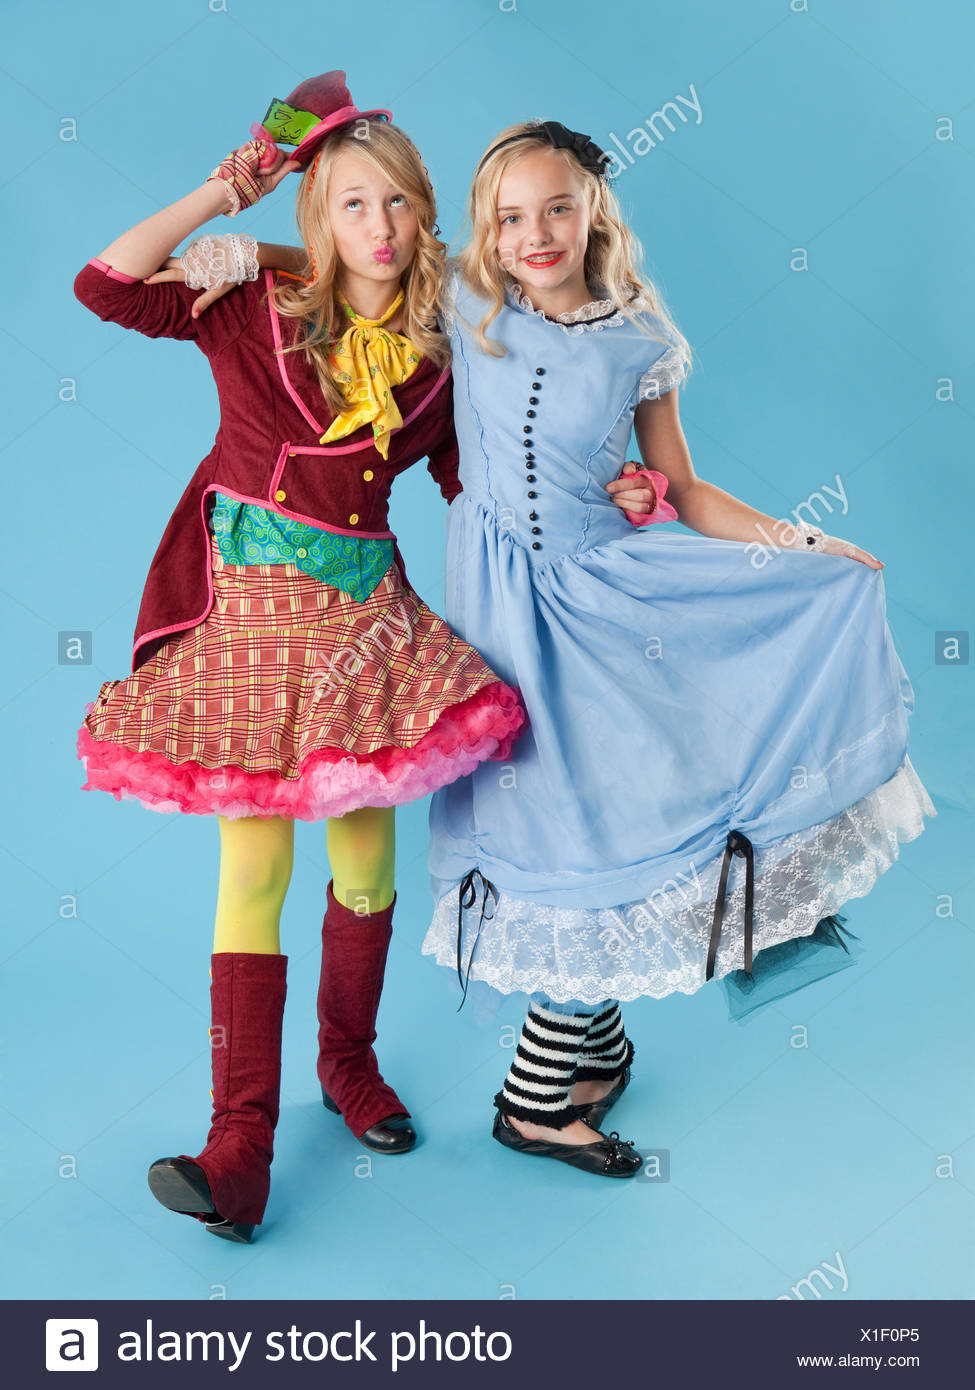 Two Girls 10 11 In Alice In Wonderland Costumes For Halloween